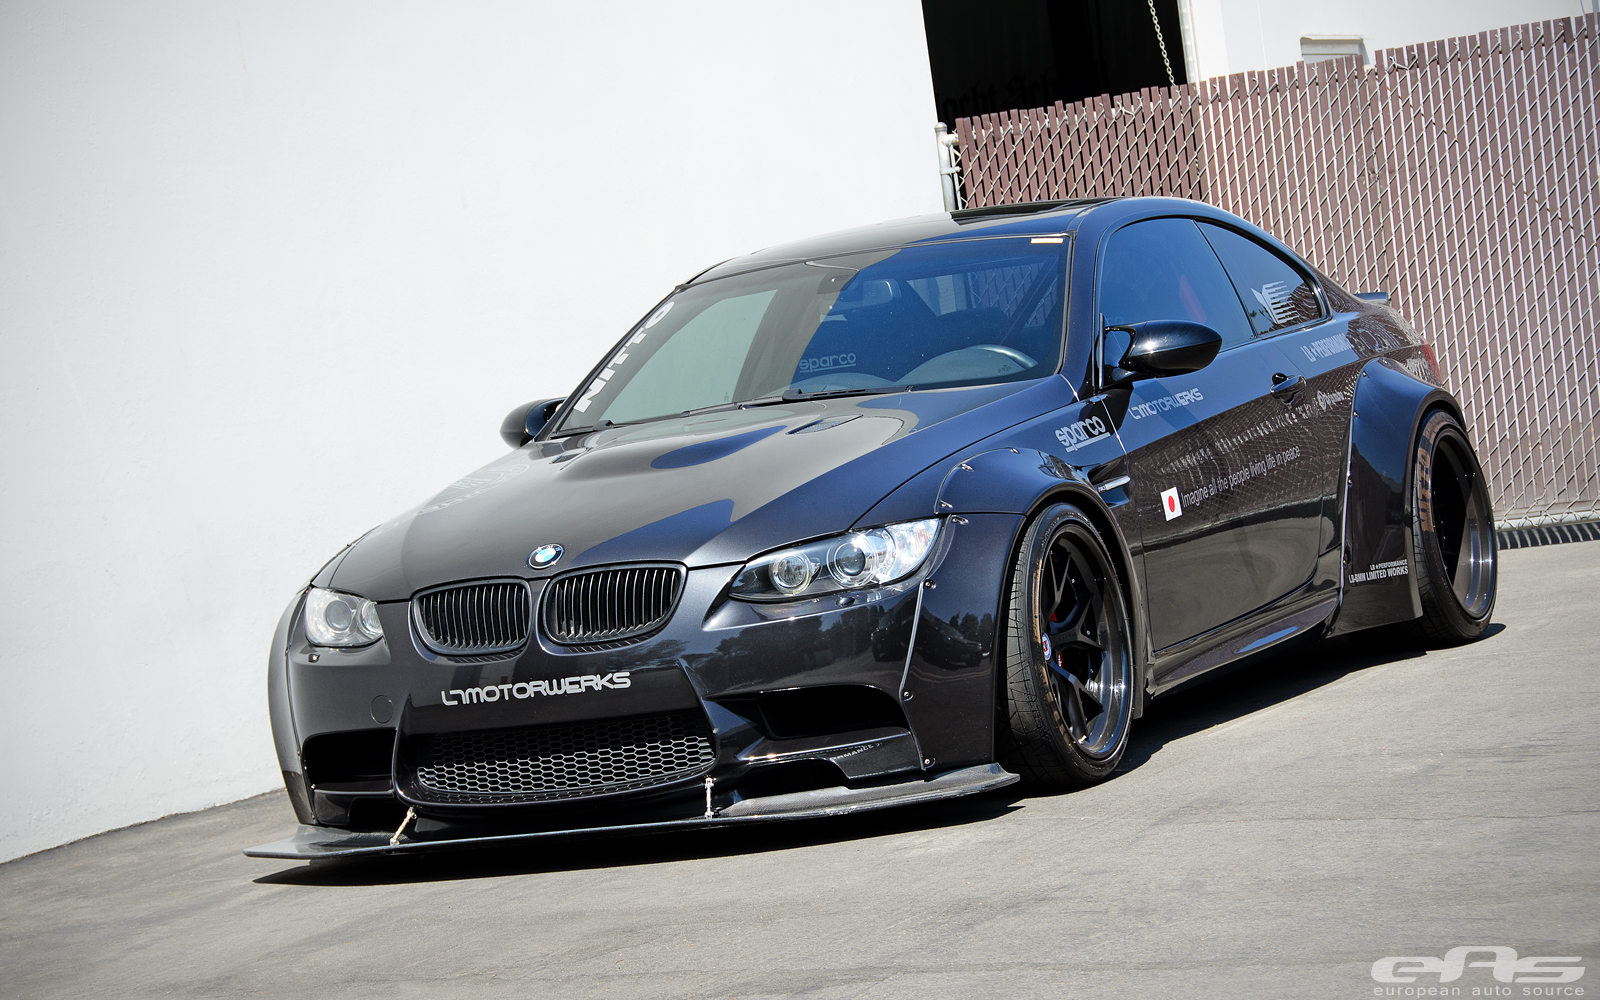 This Widebody Bmw Is One Mean M3